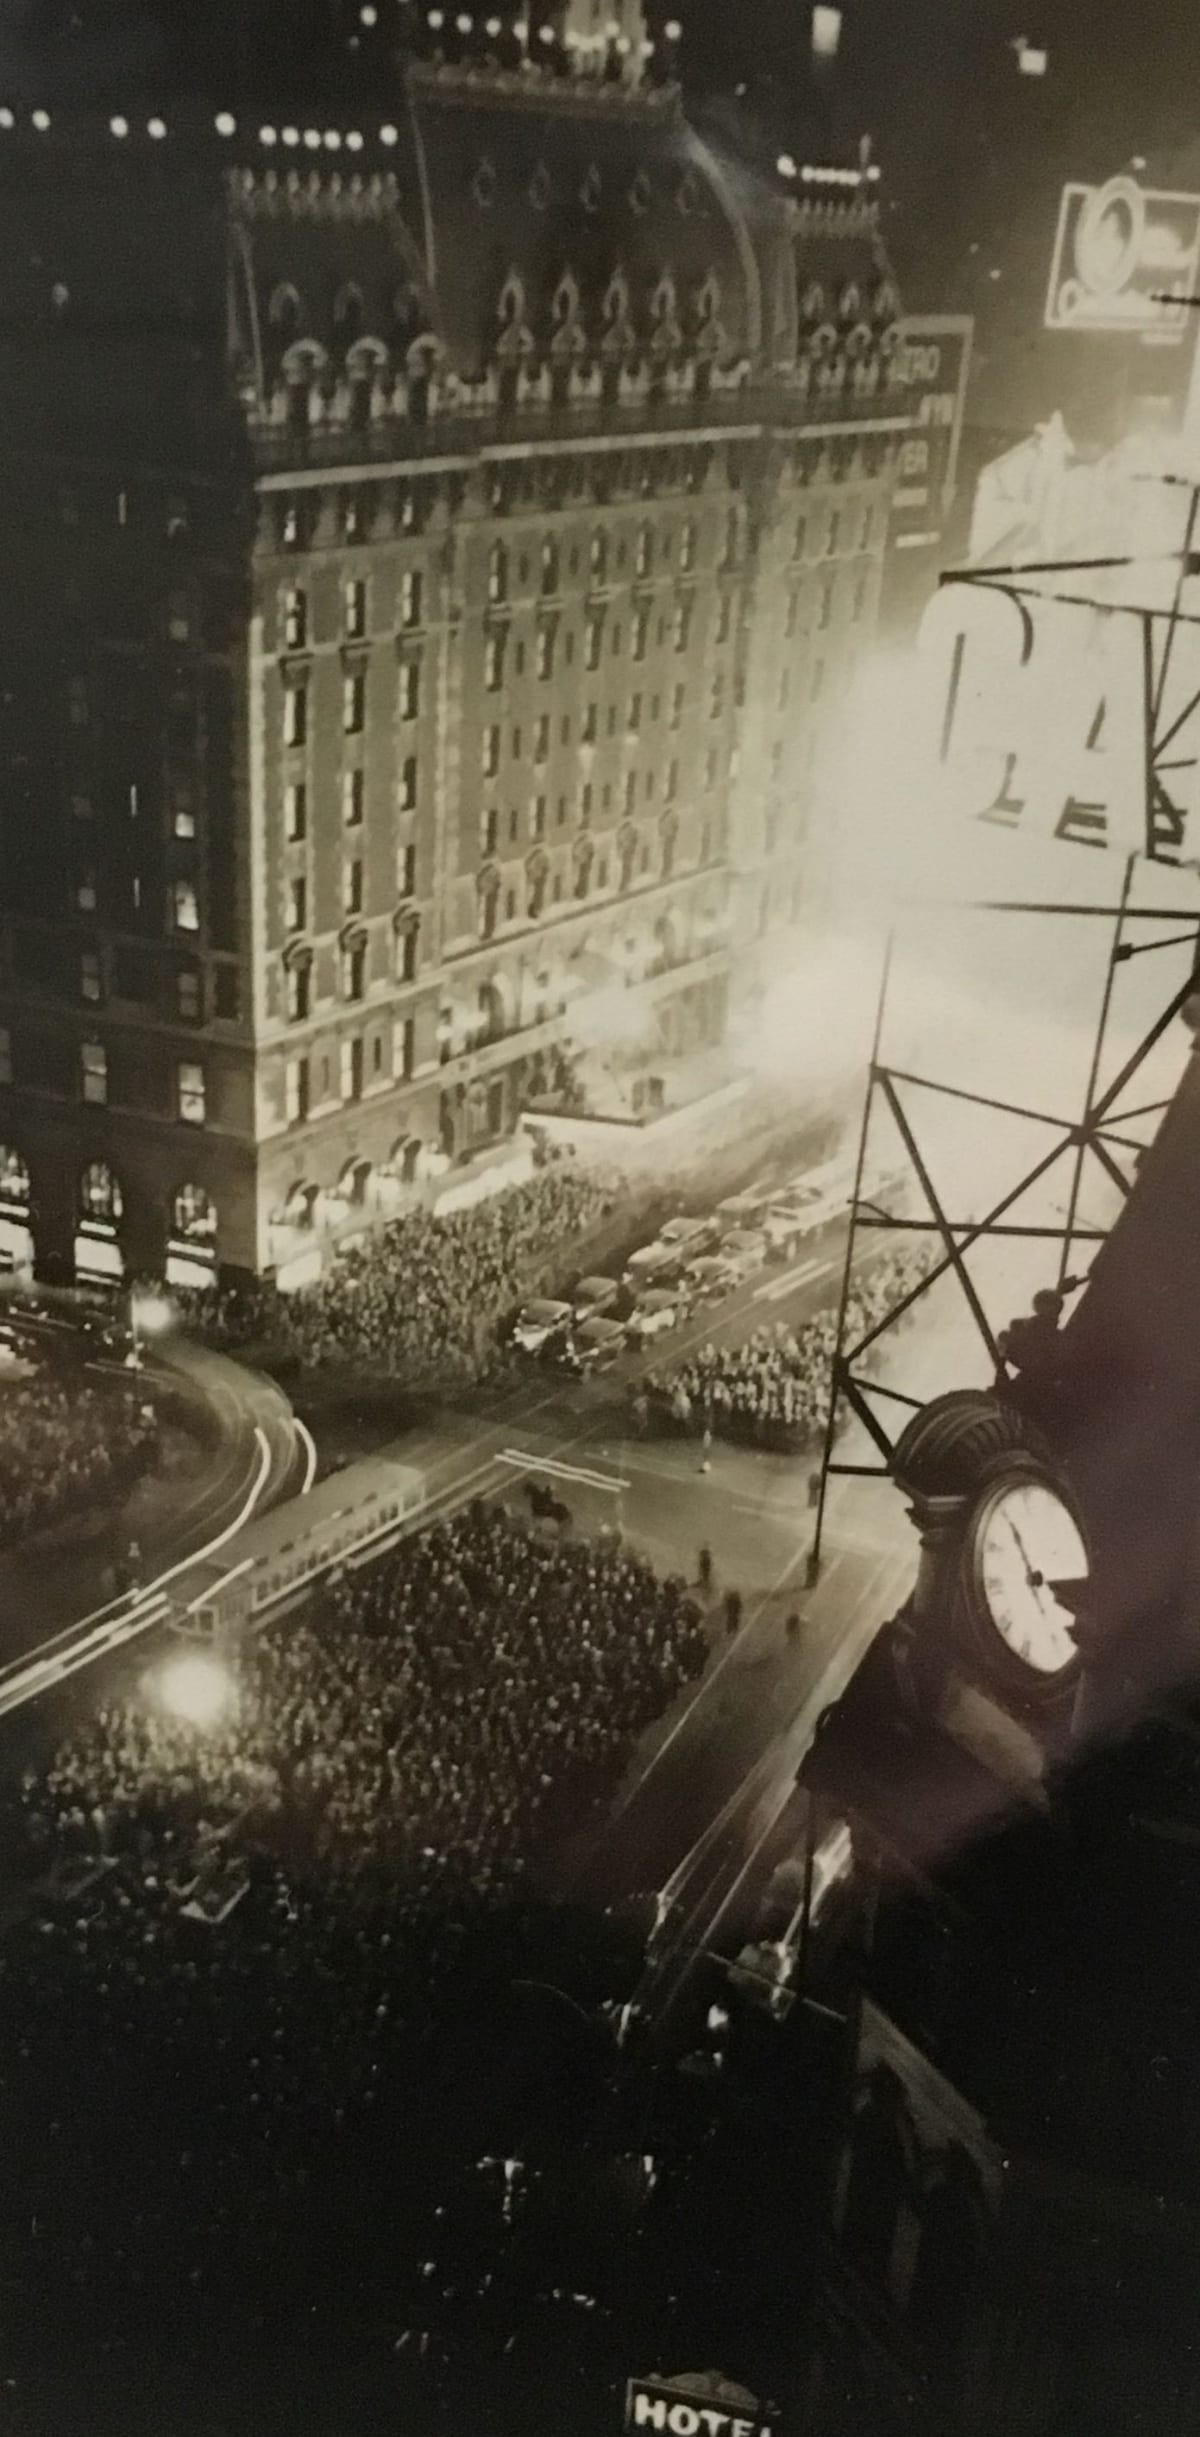 """Fred Zinnemann 1907-1997Election Night for Franklin D. Roosevelt, Times Square, 1932 """"This is probably the print we used in the book"""" notated on verso; """"Estate of Fred Zinnemann"""" & signed by his son Tim Zinnemann in pencil on verso Vintage gelatin silver print 4 1/4 x 2 3/8 inches"""